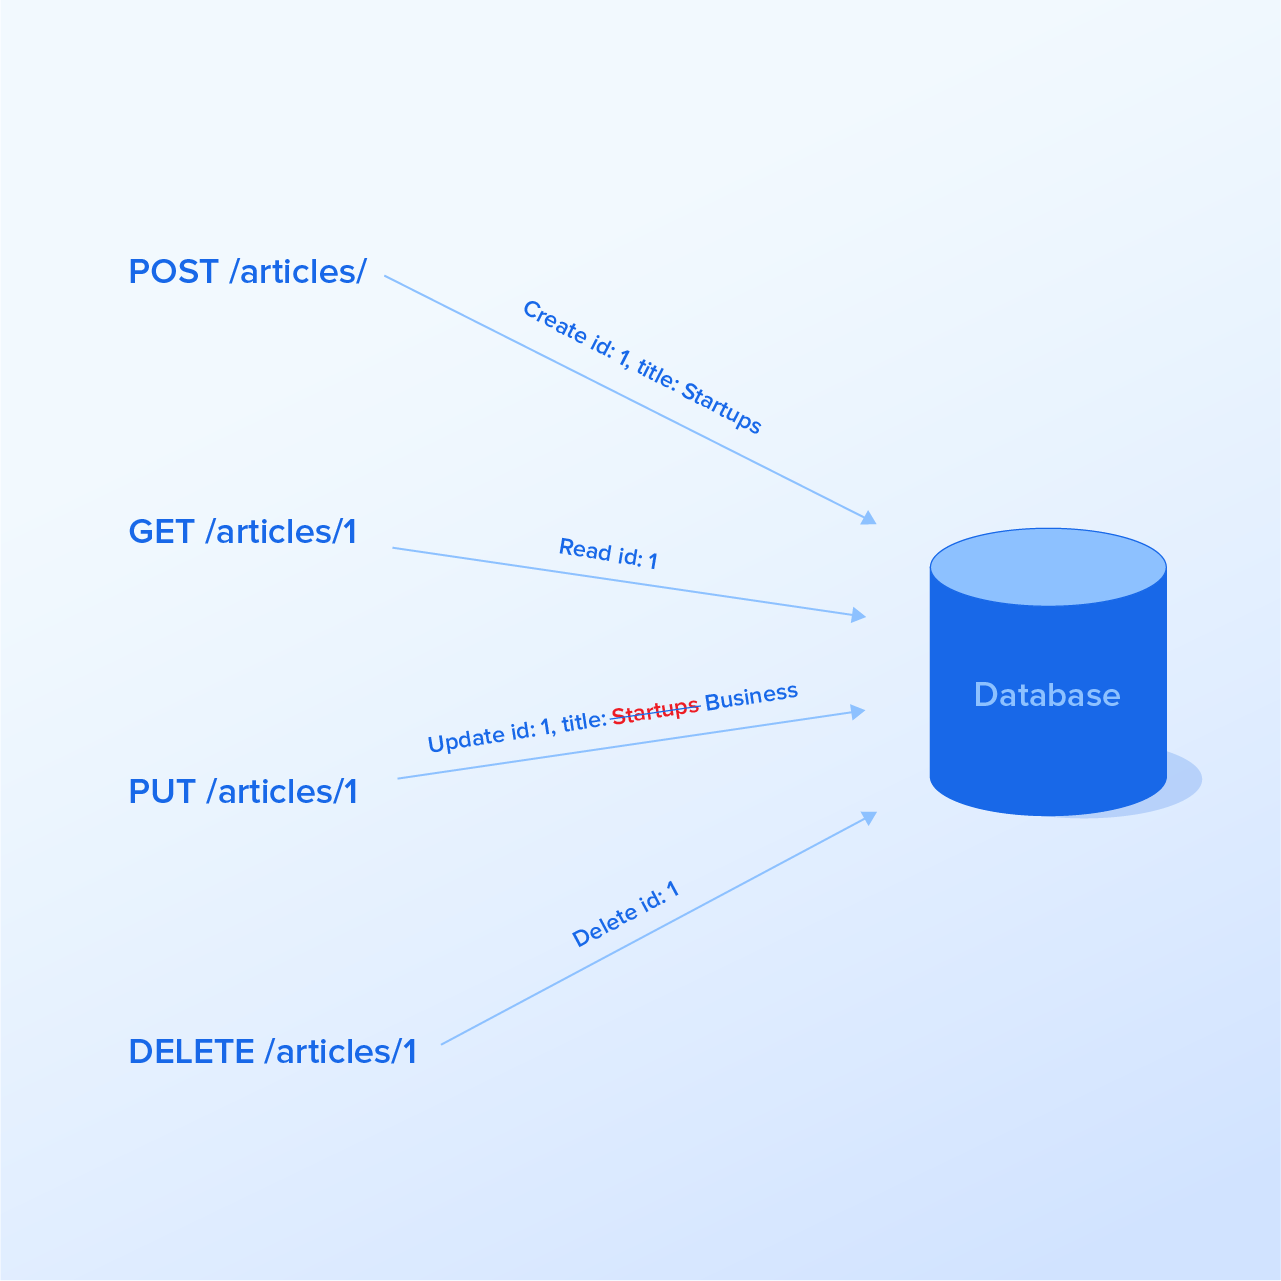 HTTP verbs: GET, POST, PUT and DELETE are actions in RESTful APIs